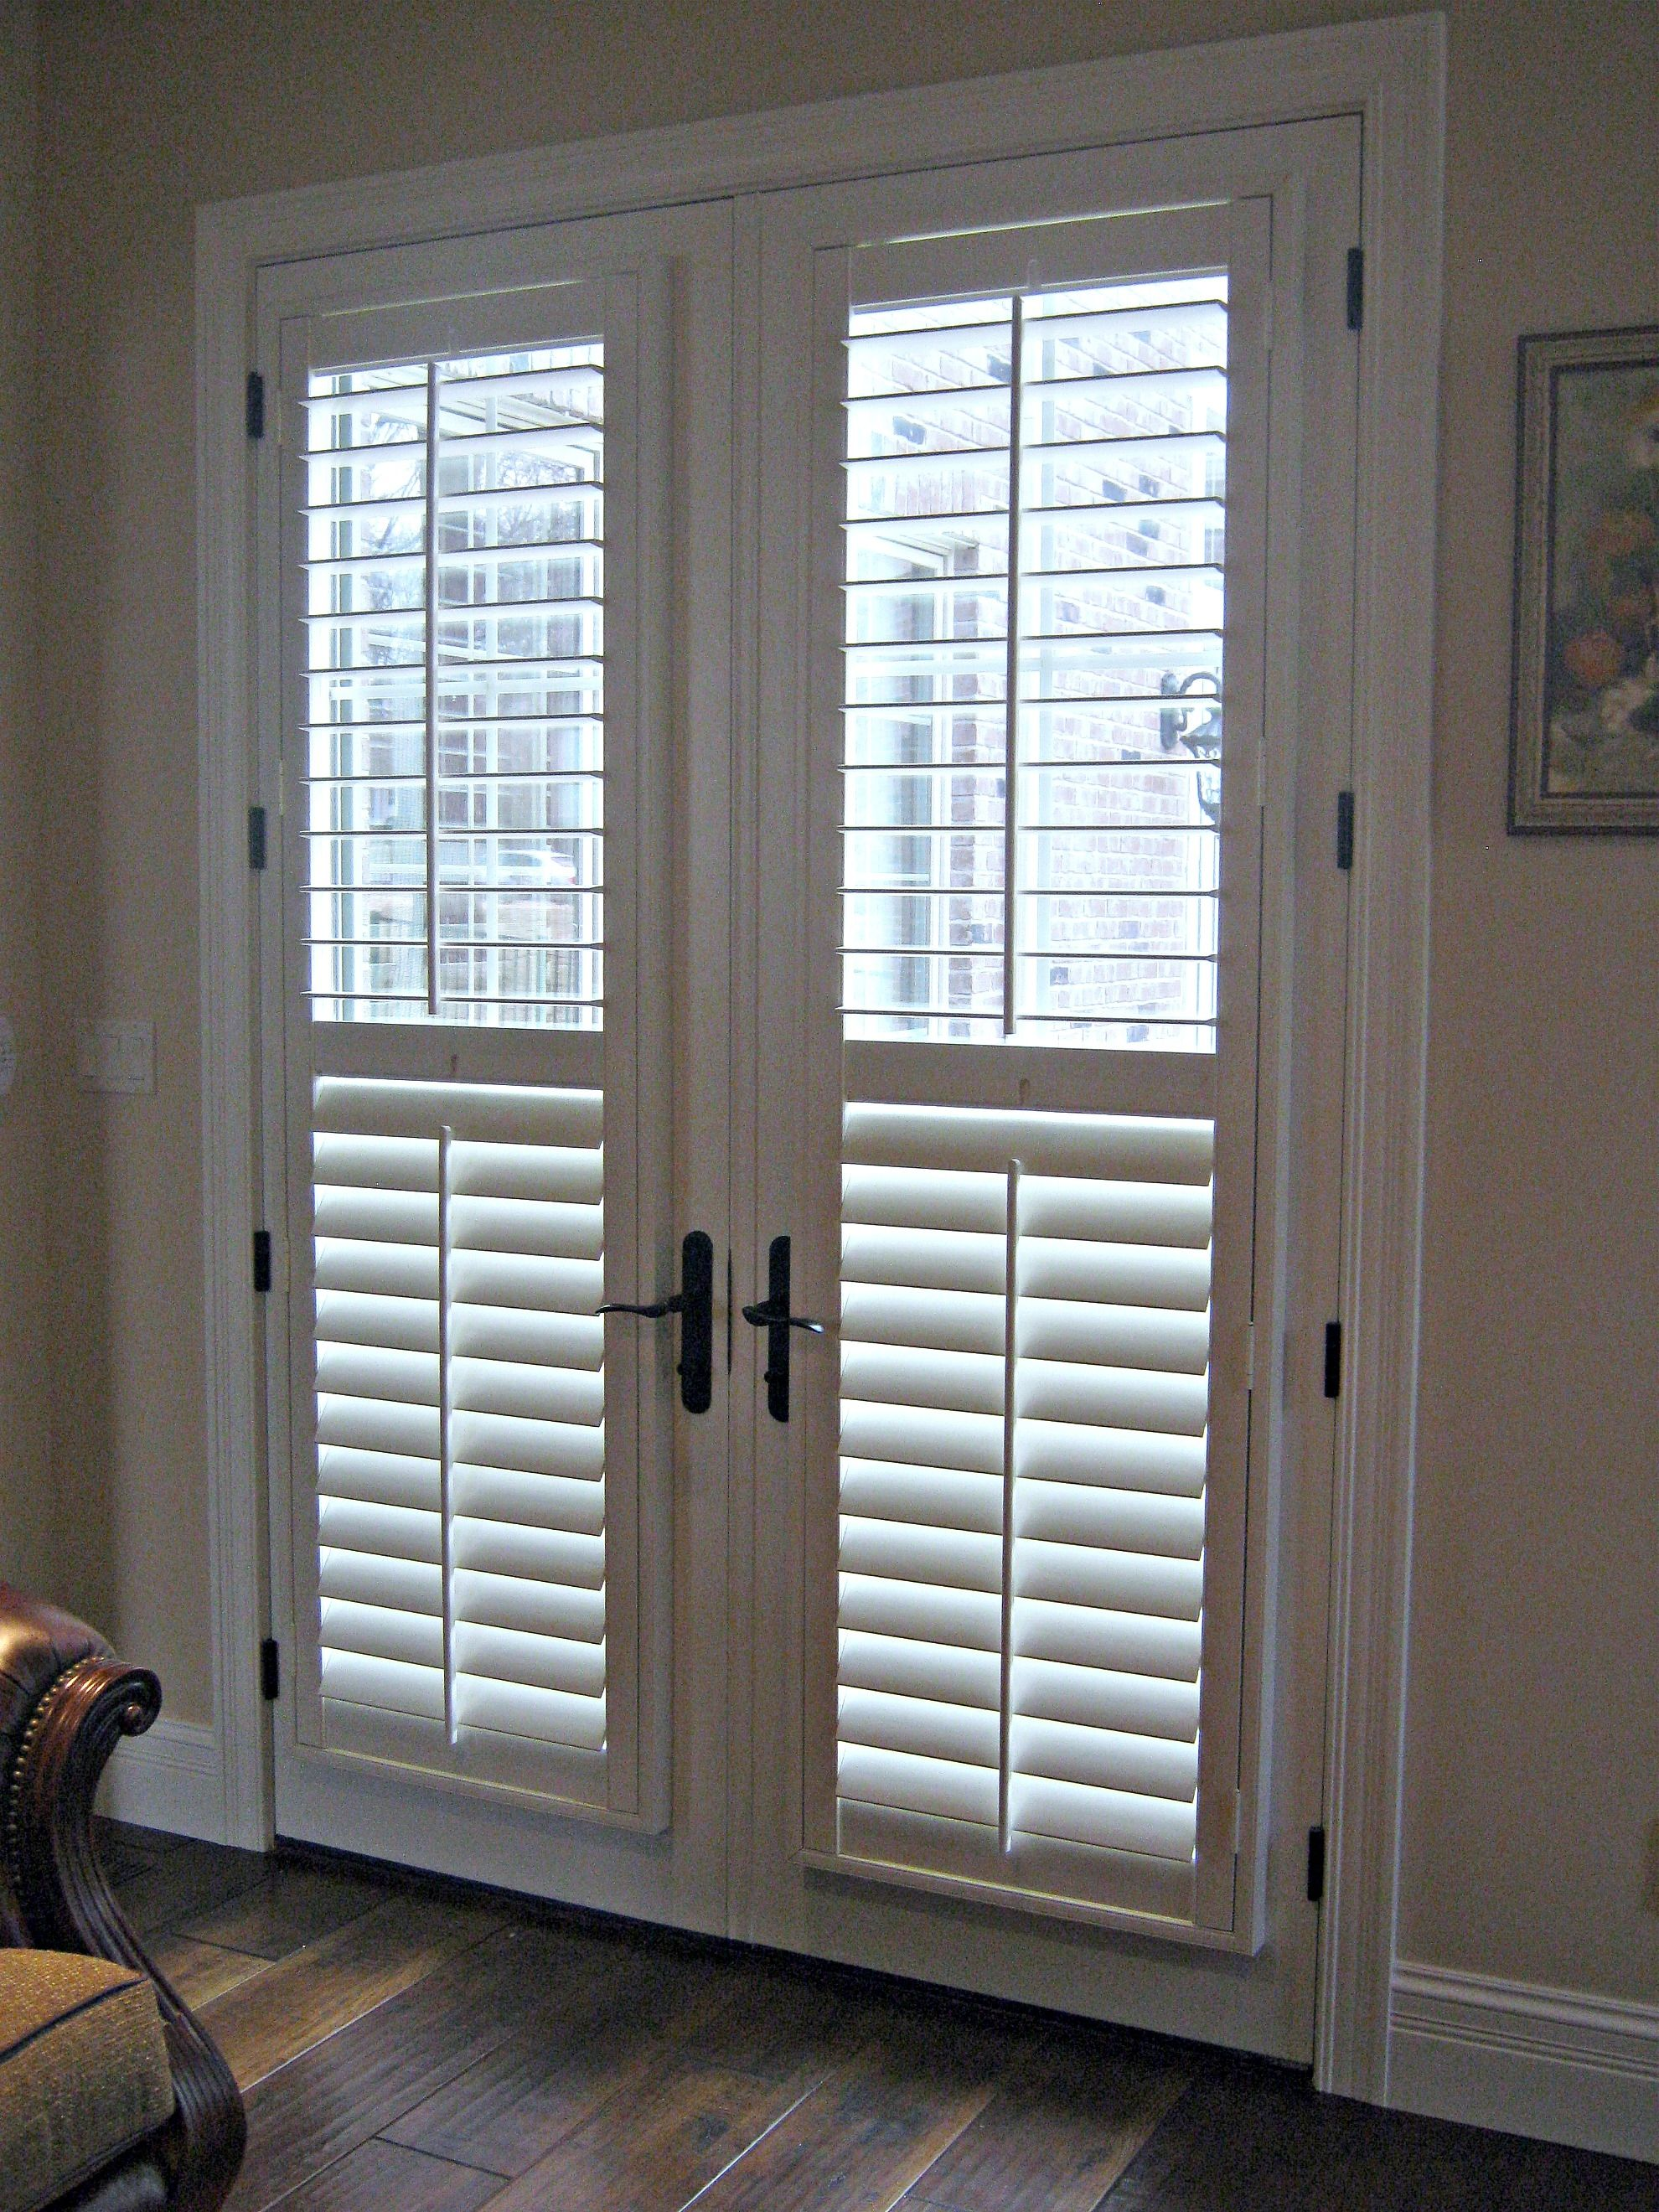 Wood shutters for patio doors httpbukuweb pinterest bi fold plantation shutters patio doors a patio allows you the option of relaxing outside while planetlyrics Images